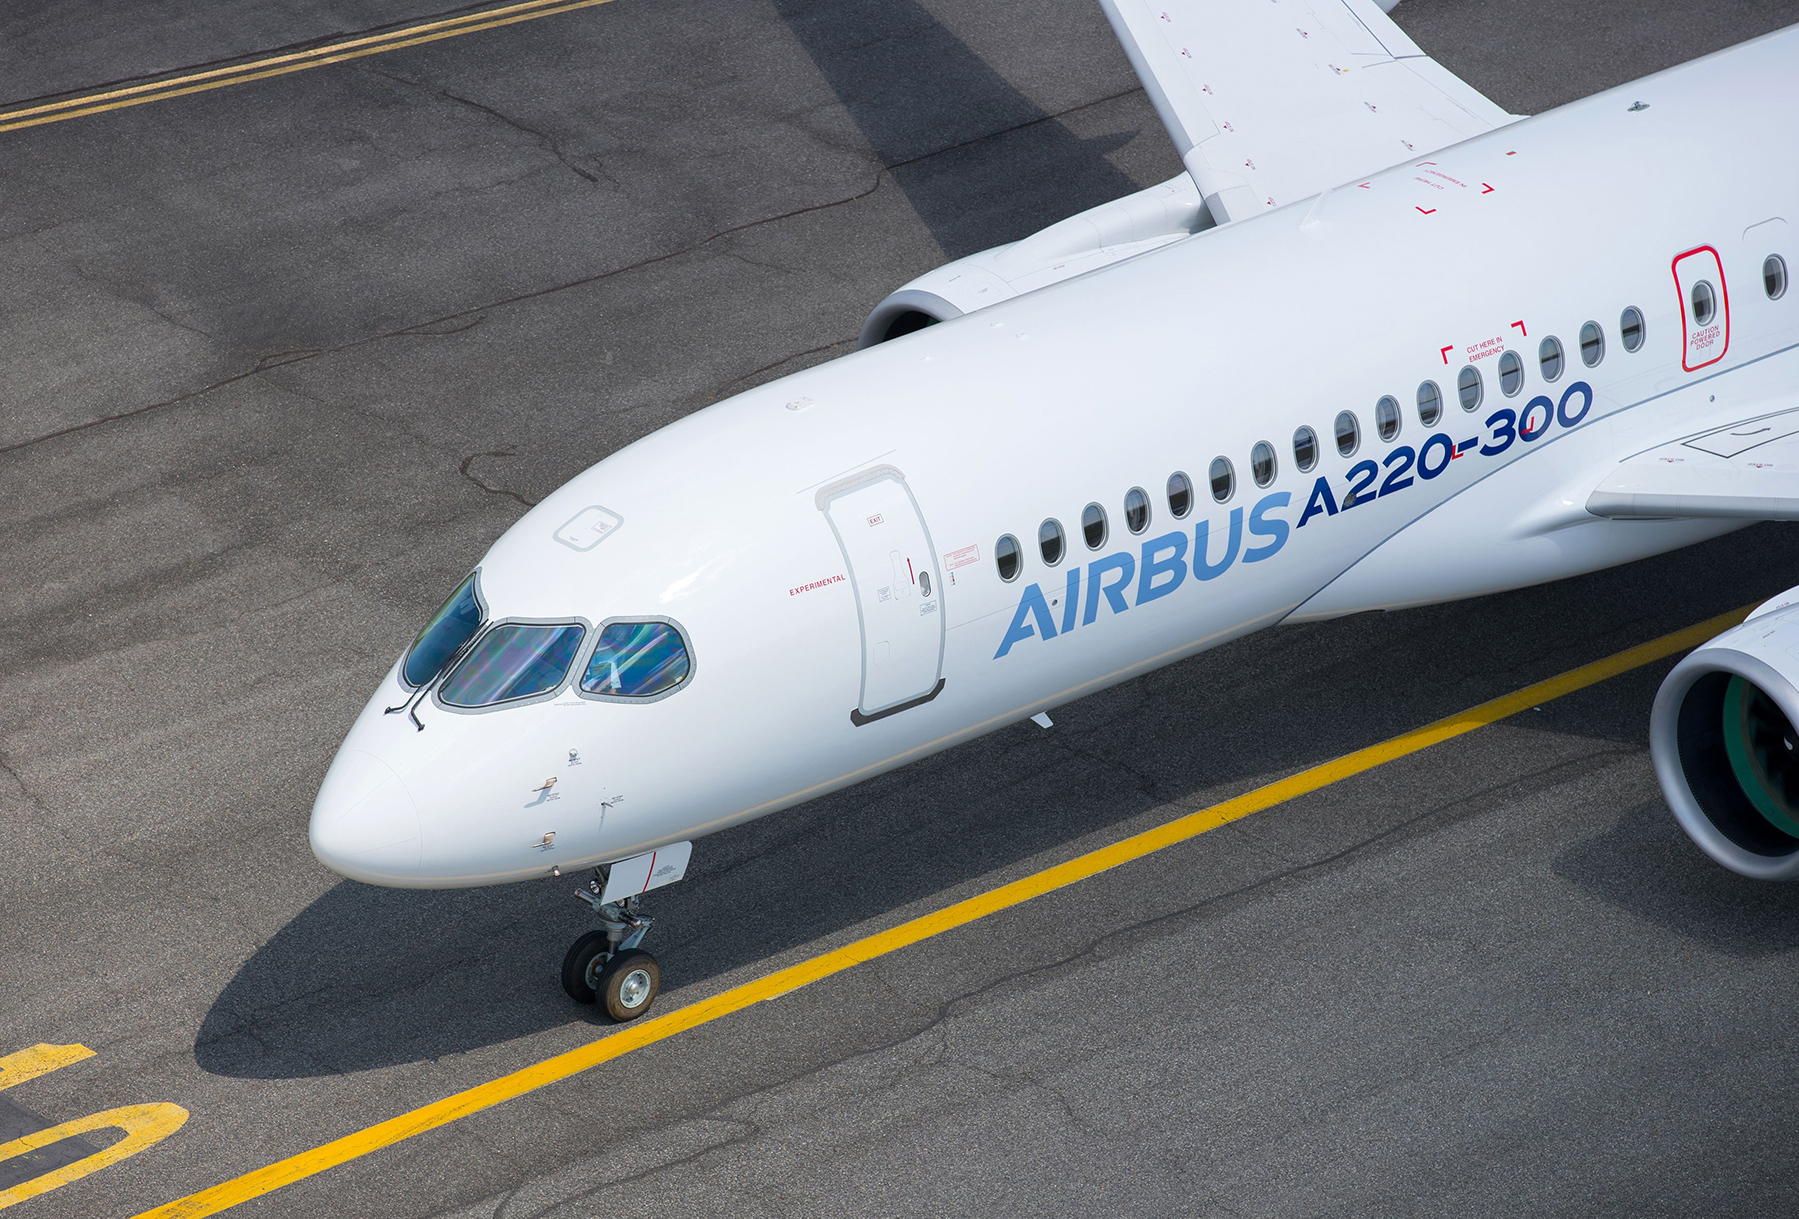 Airbus on July 10 rebranded the Bombardier C Series as the Airbus A220-100 and -300.